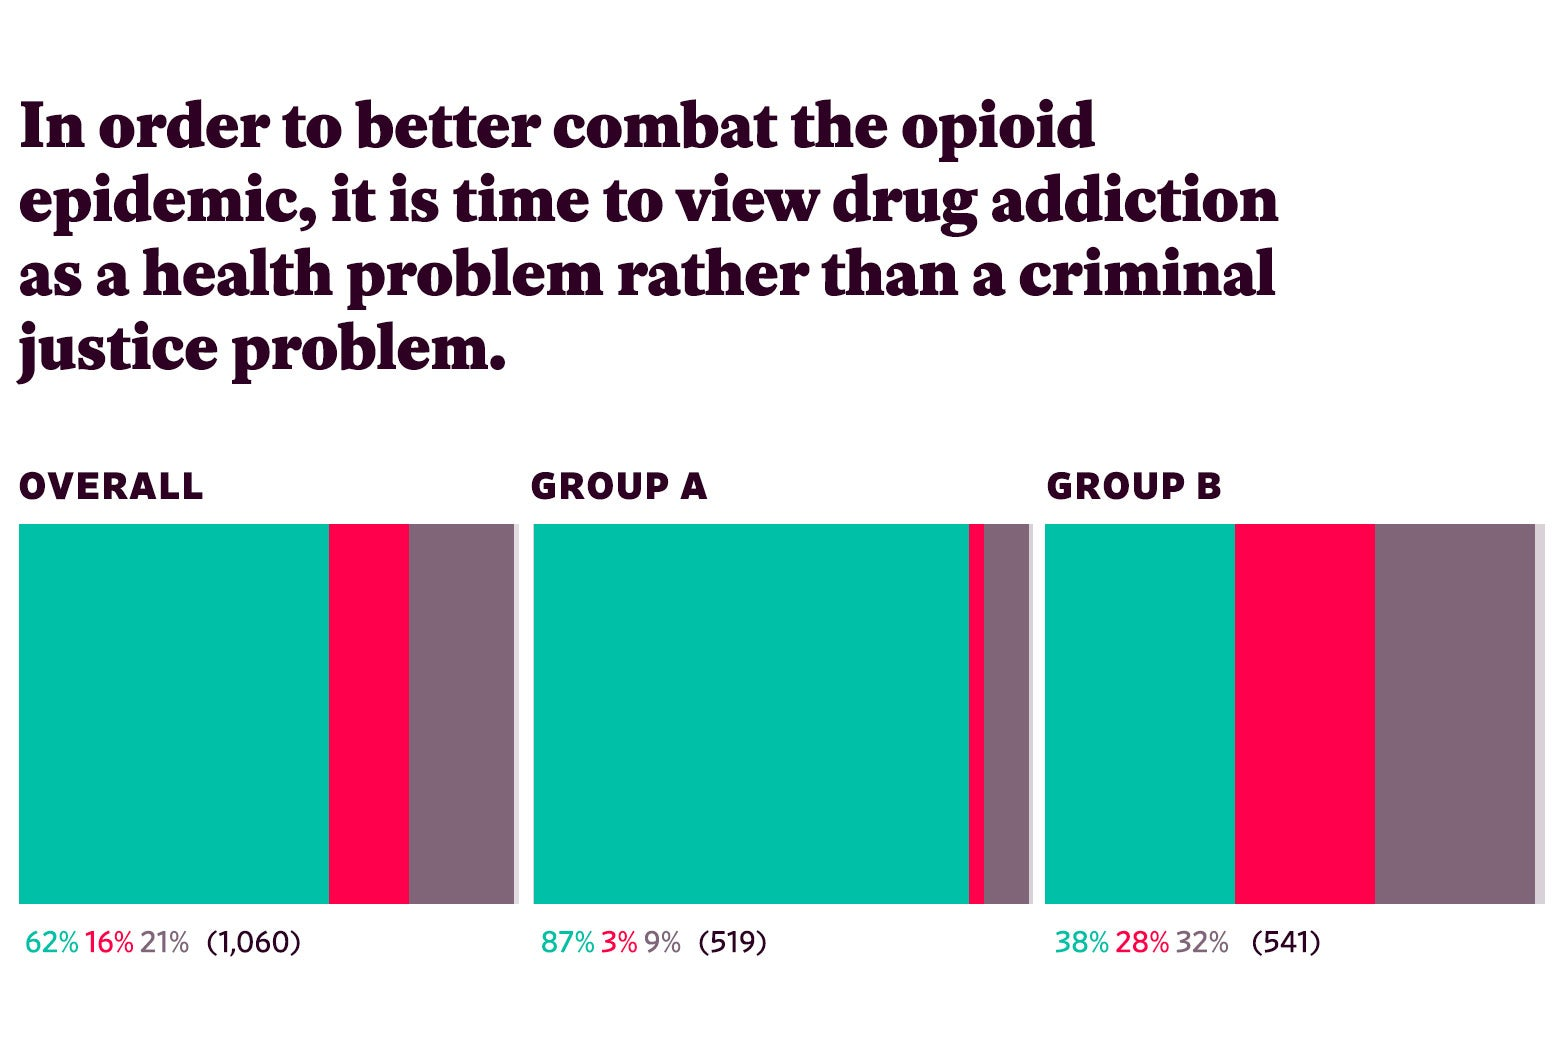 """Responses to """"In order to better combat the opioid epidemic, it is time to view drug addiction as a health problem rather than a criminal justice problem."""""""